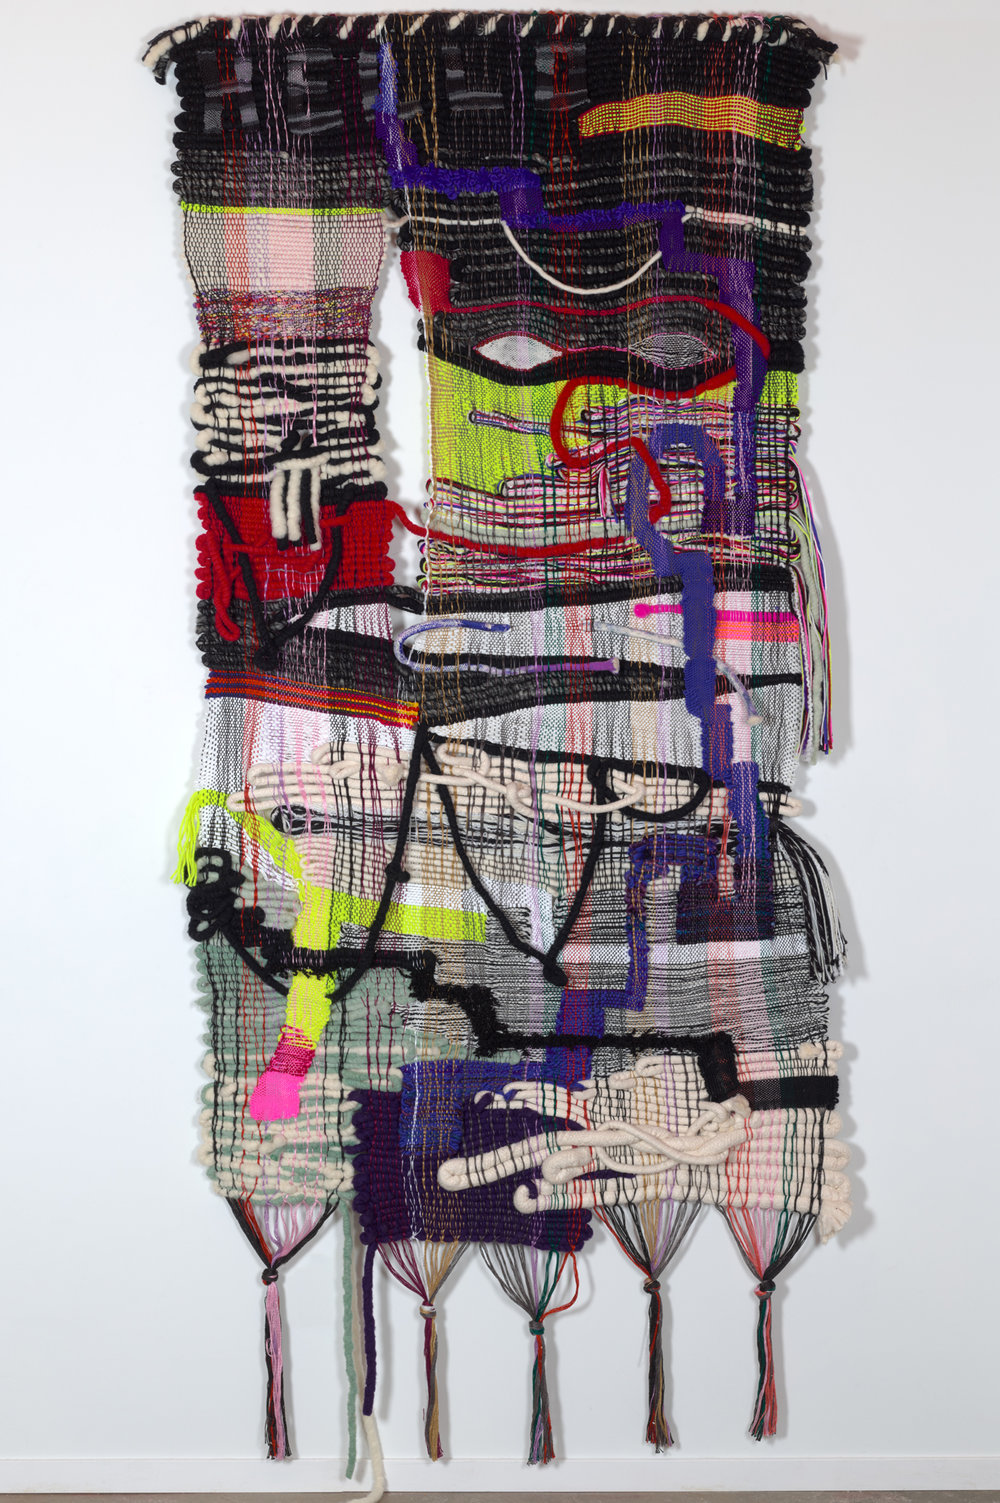 Terri Friedman Hello Uncertainty, 2018, 96 x 42, wool, cotton, acrylic fibers, $14,000